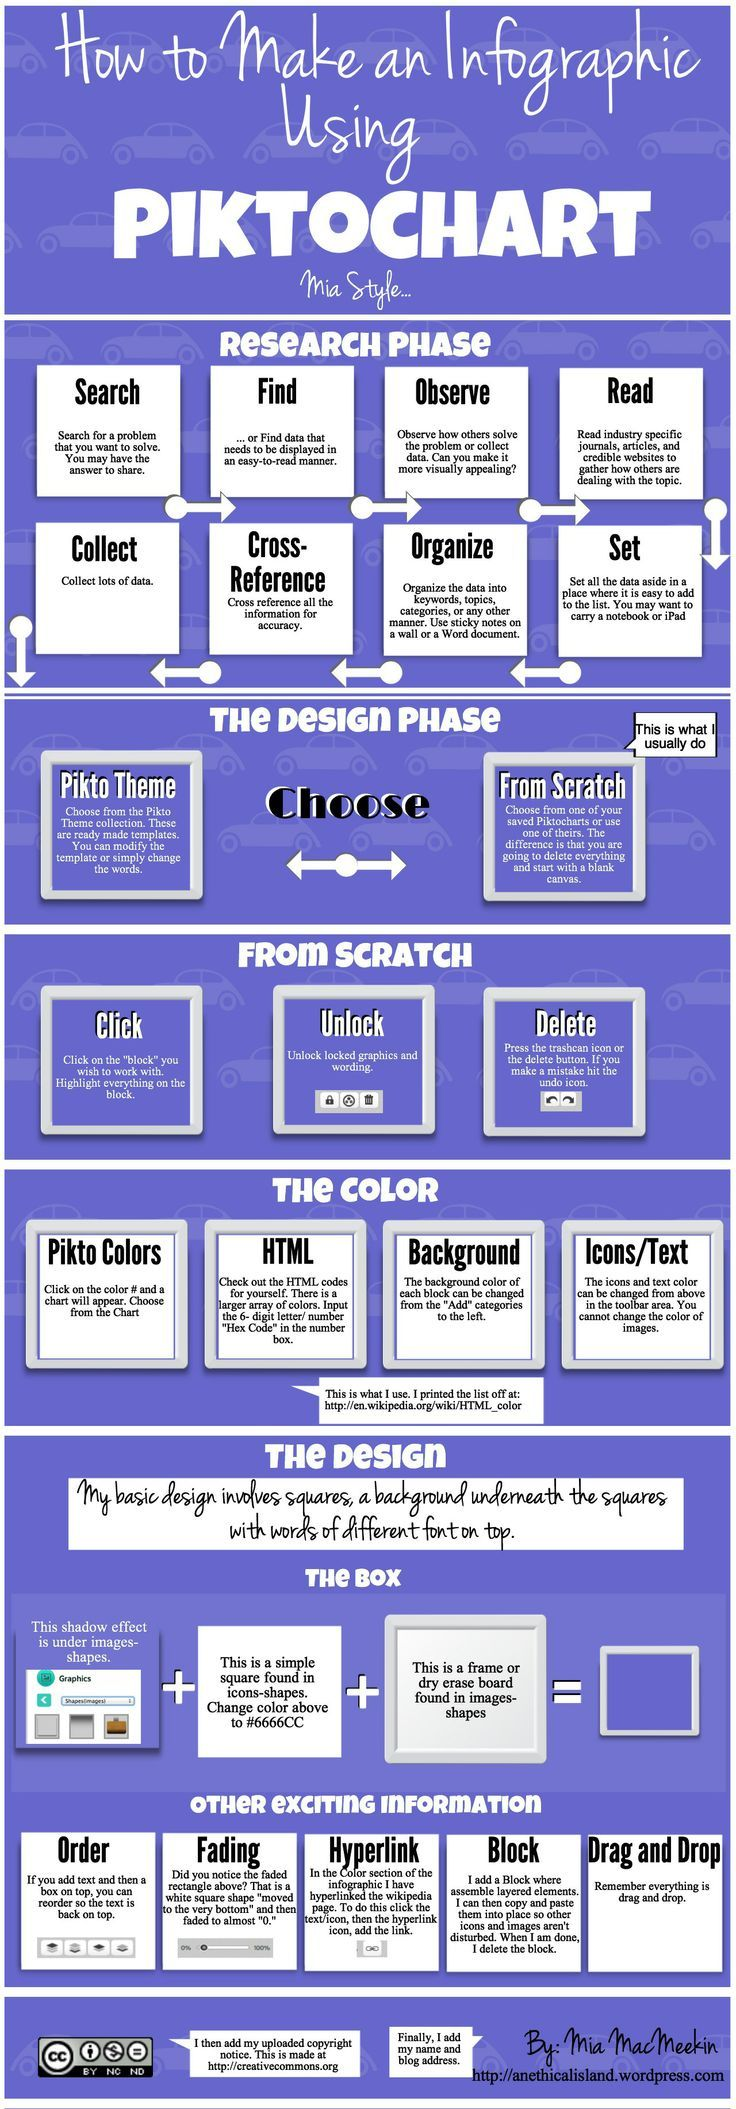 How to Make a Piktochart Infographic  http://anethicalisland.wordpress.com/2013/08/22/how-to-make-an-infographic/